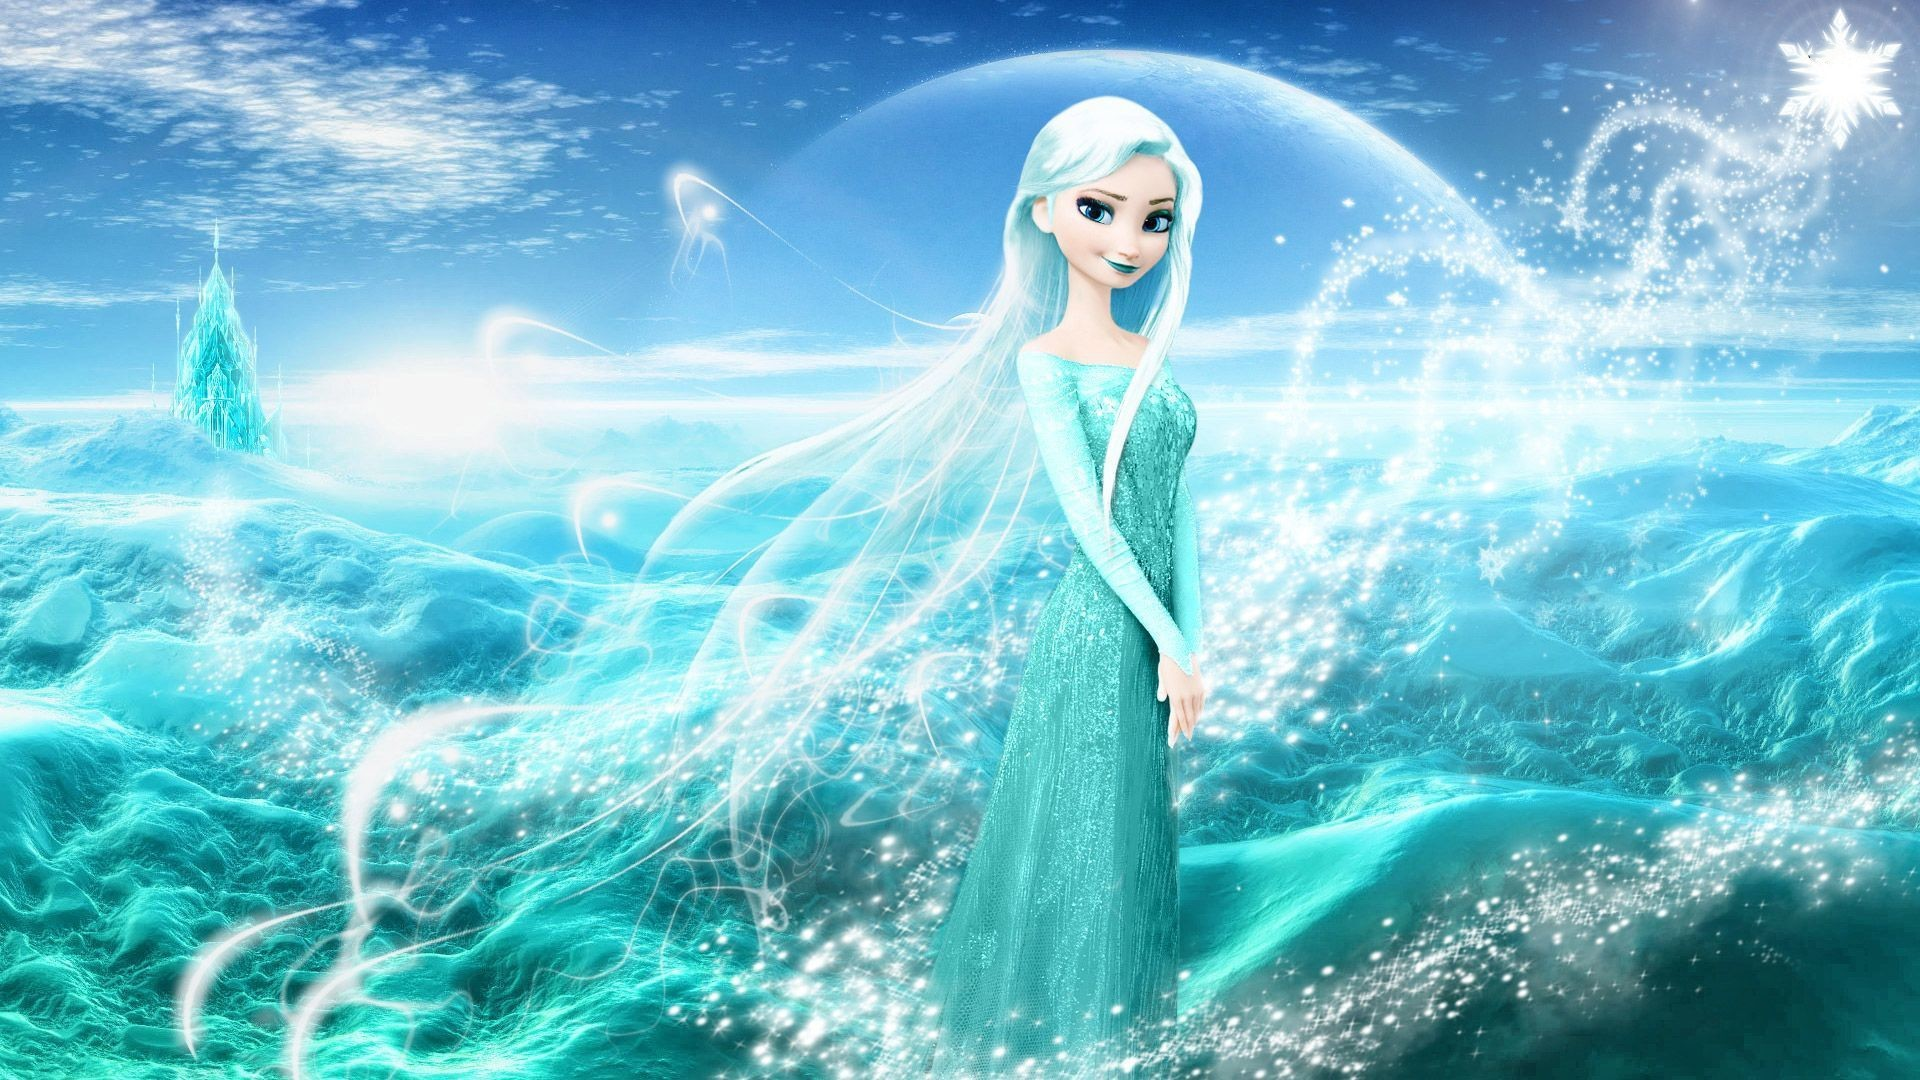 Res: 1920x1080, PC  px Disney Frozen Desktop Wallpaper, ModaFinilsale.com